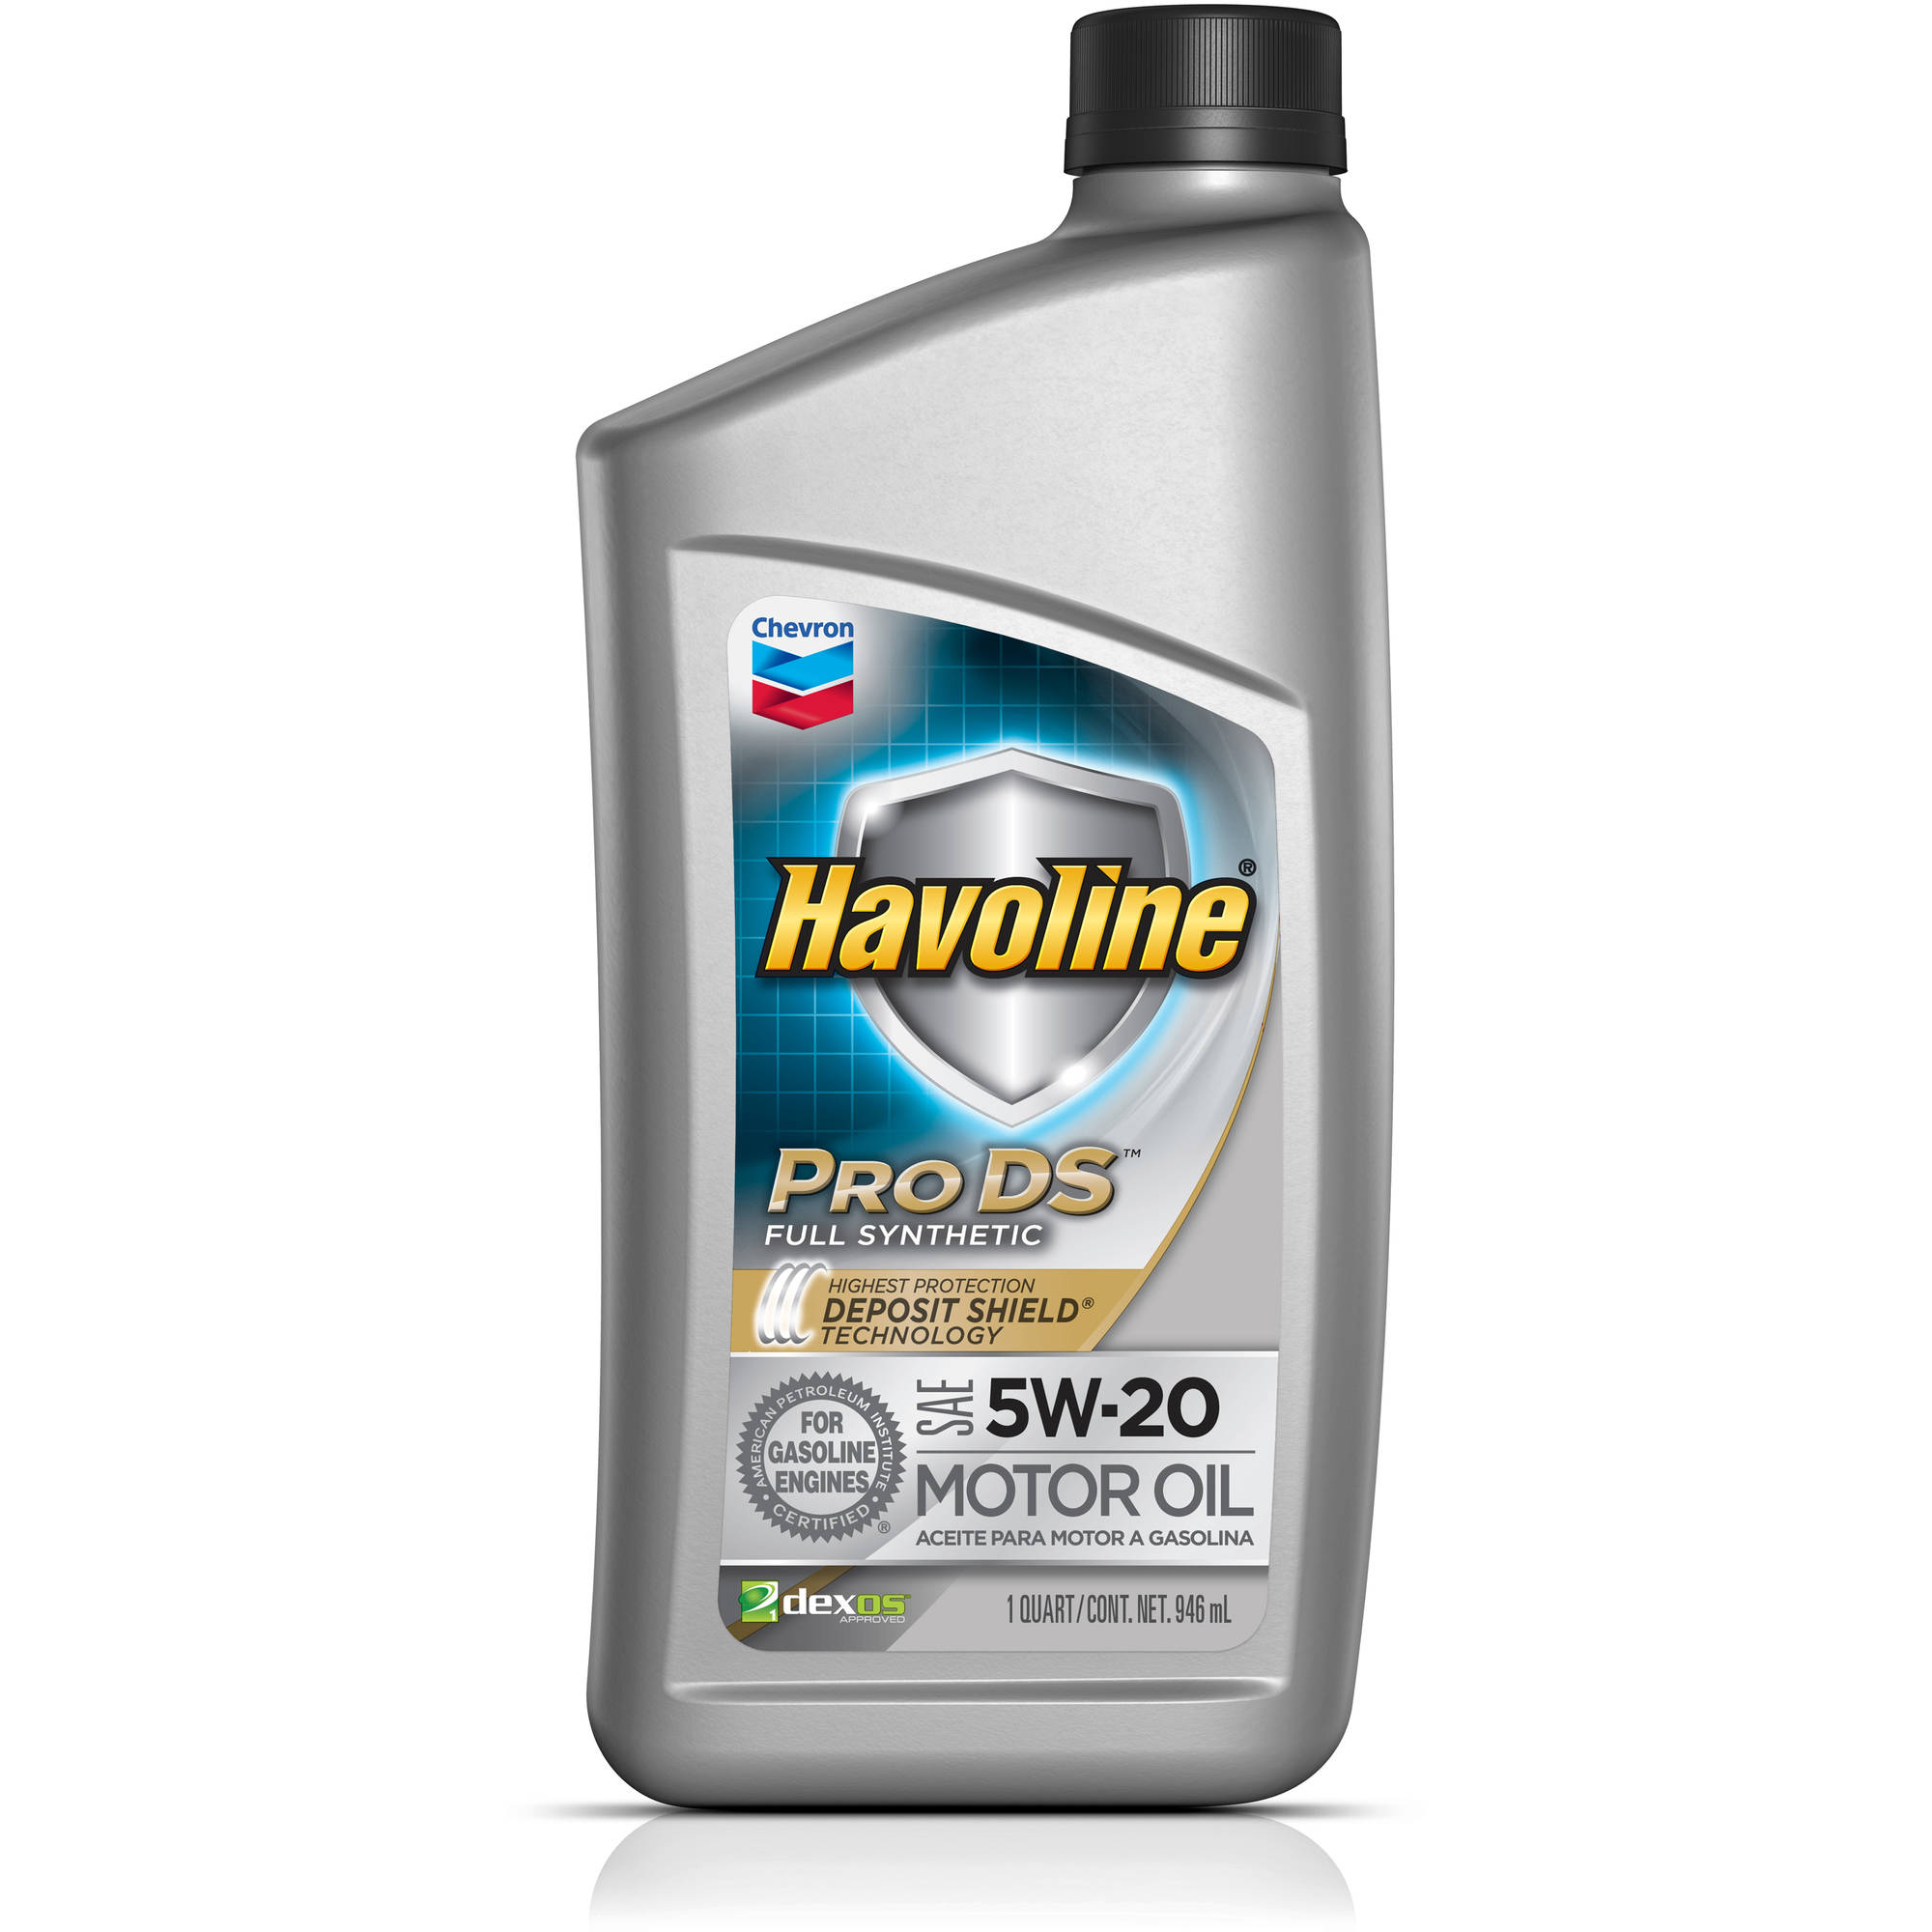 Chevron Havoline® Pro DS™ Full Synthetic SAE 5W-20 Motor Oil 1 qt Bottle